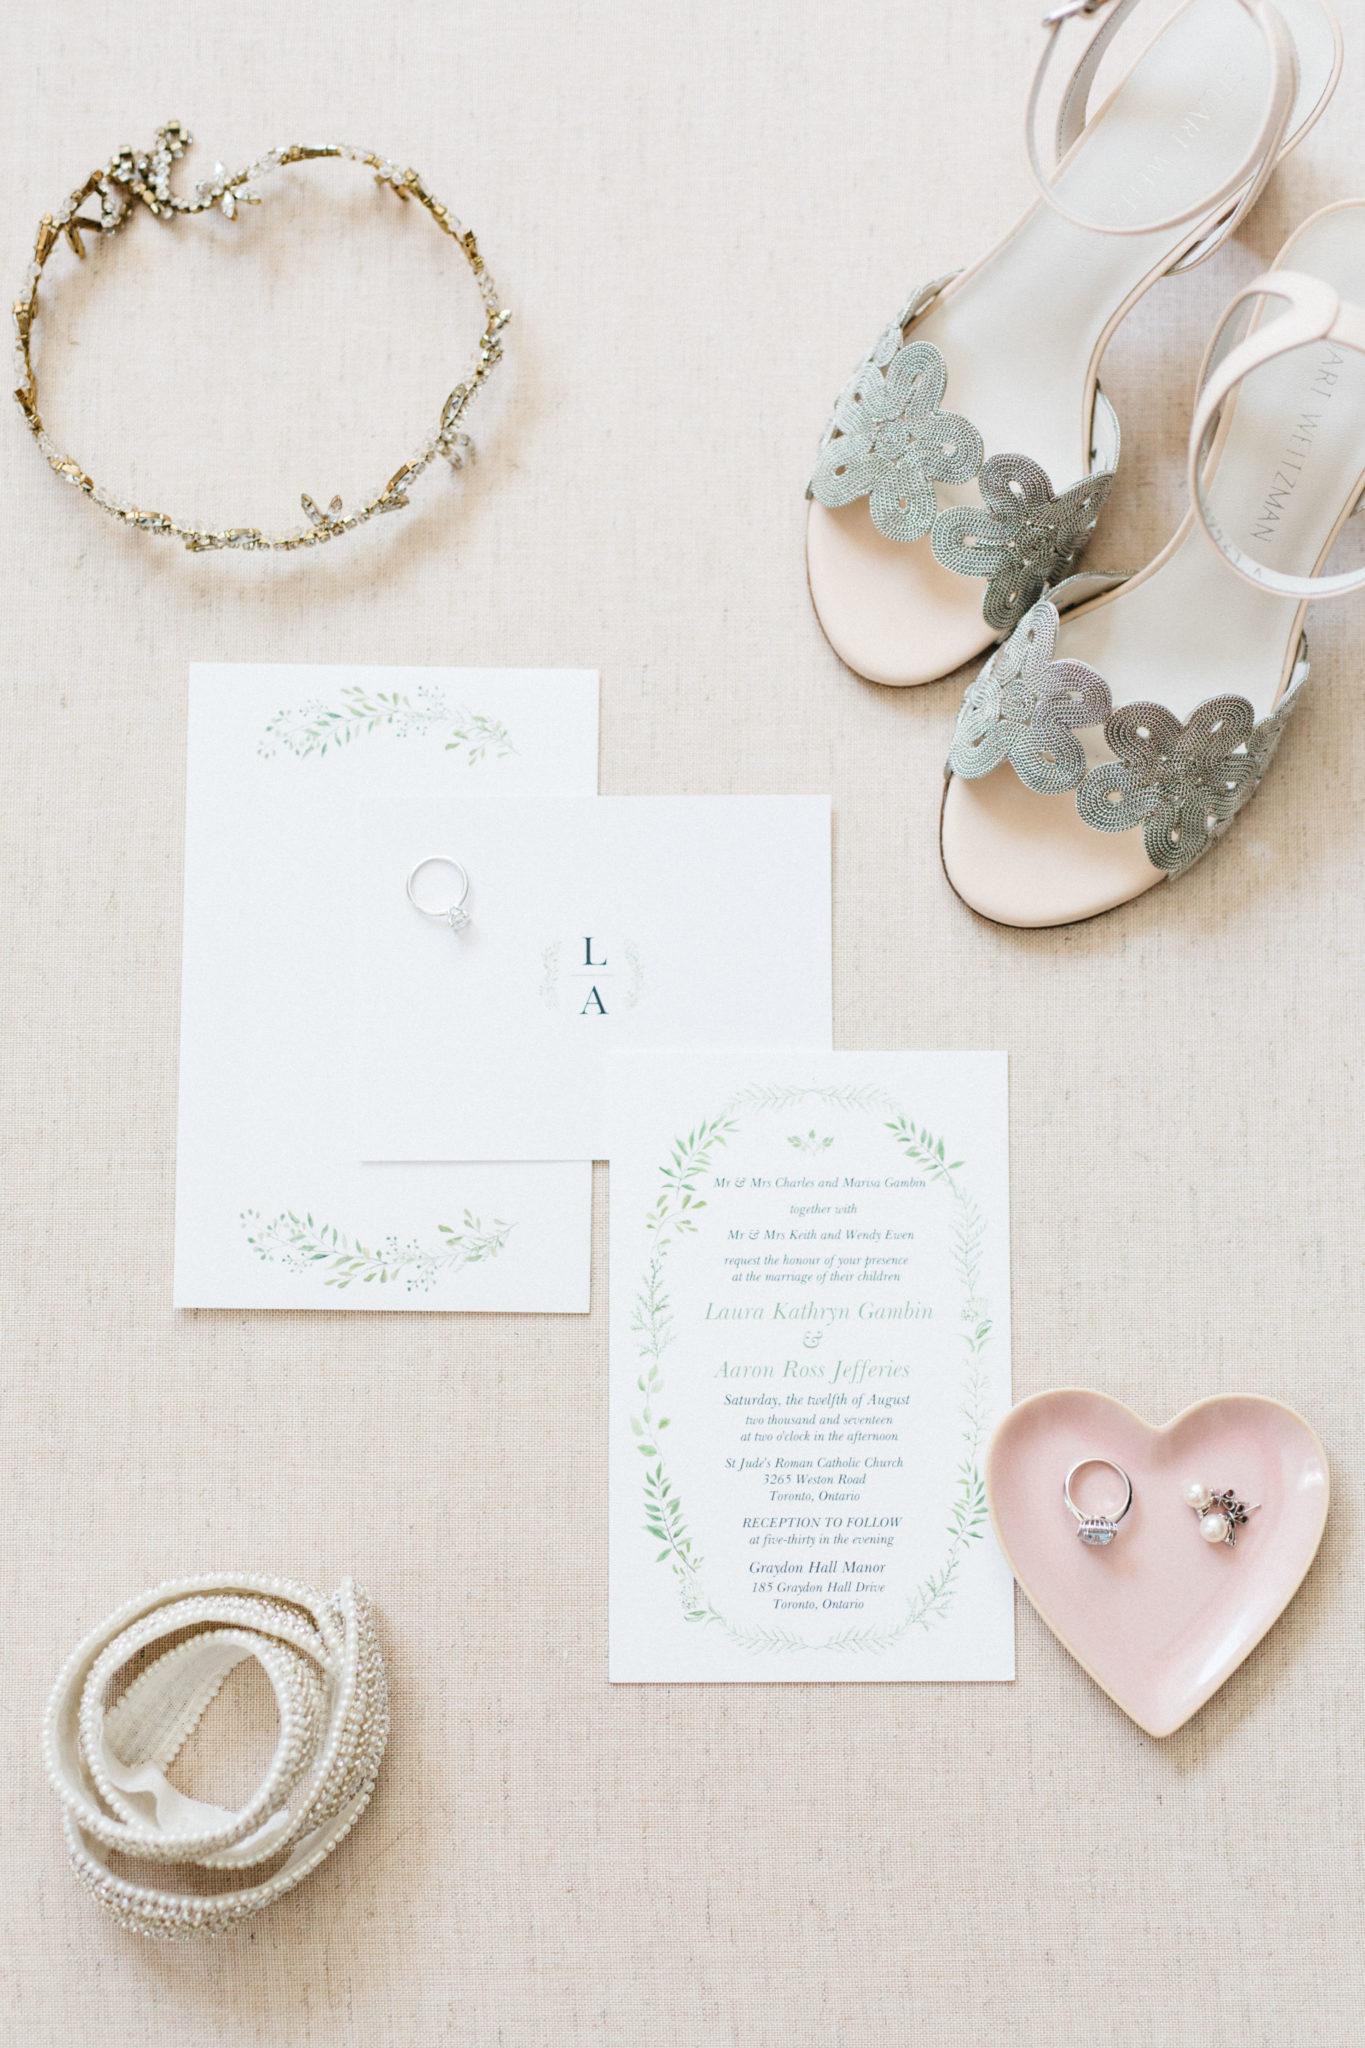 Bride's shoes, rings, belt, and wedding invitation